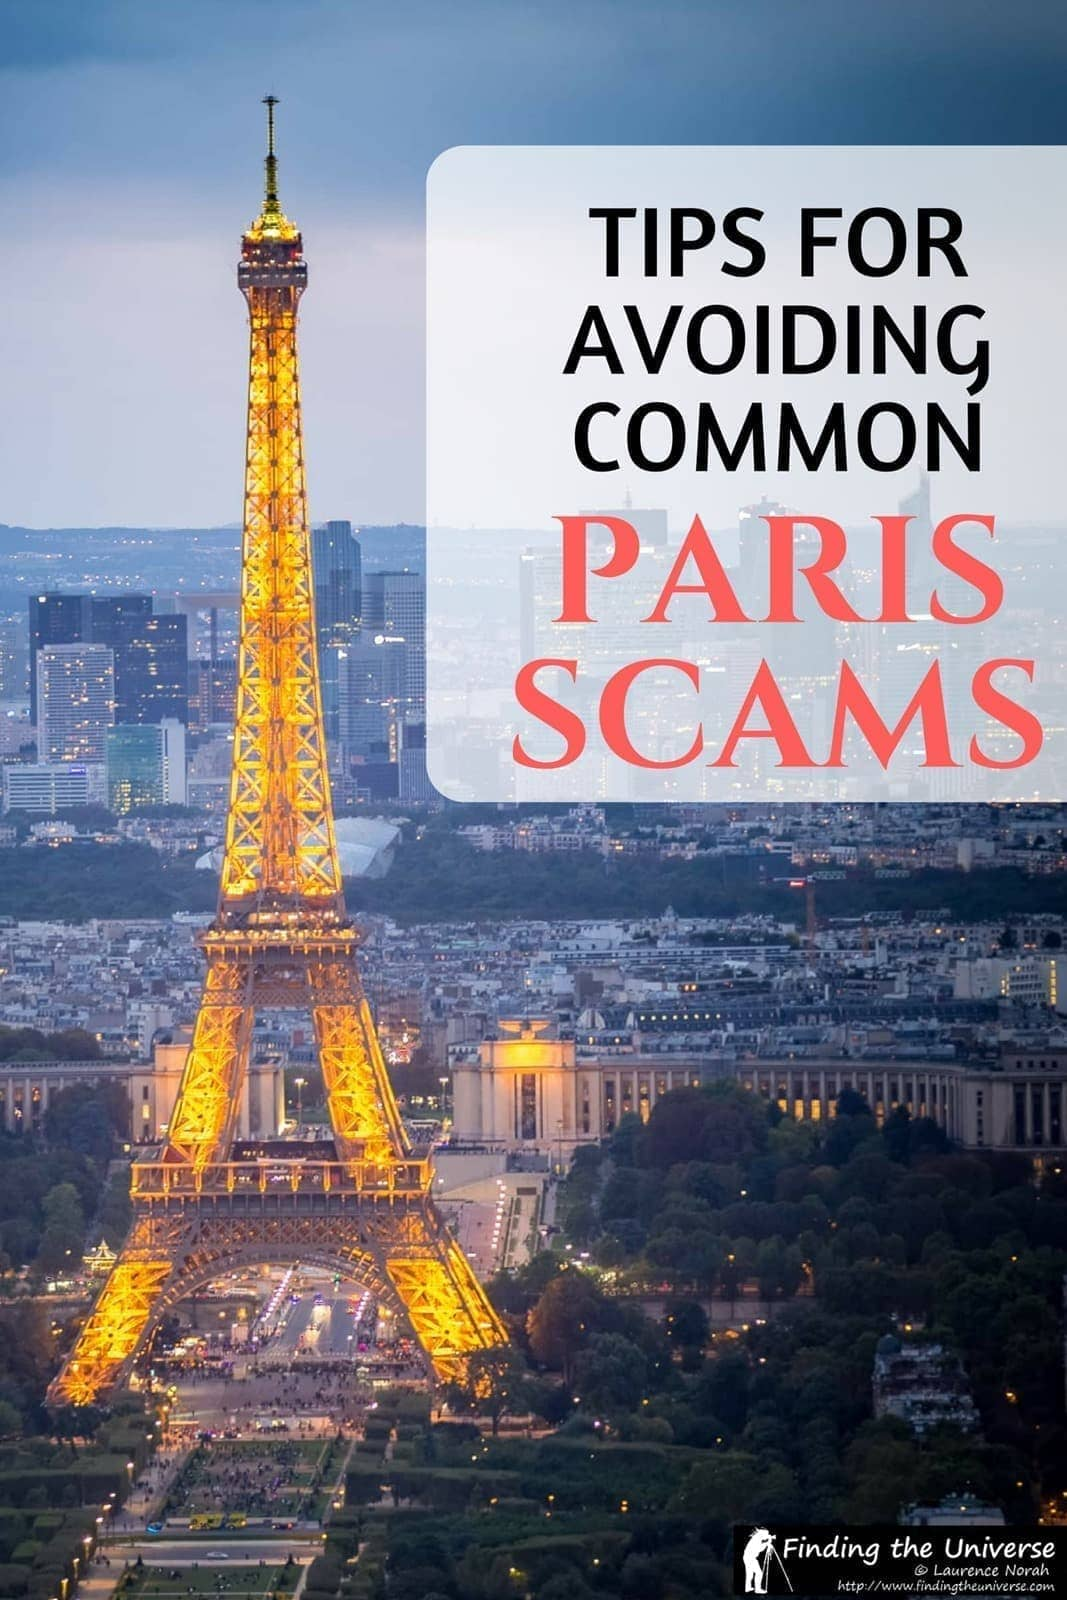 Advice on avoiding the more common scams in Paris, including the ring scam, the friendship bracelets, the cup and ball game and the petitions.